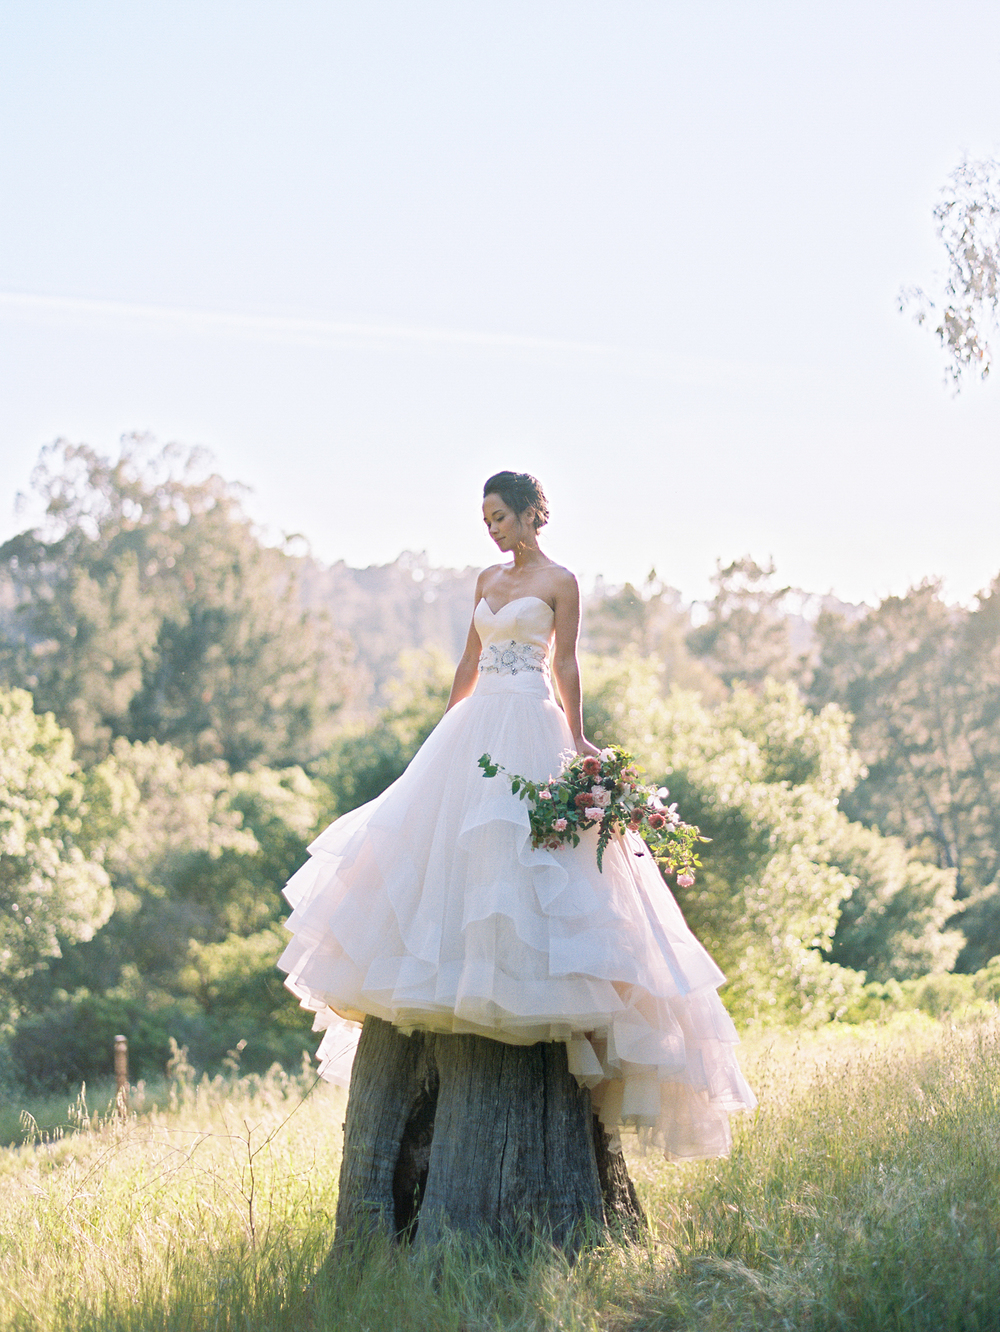 A bride poses in a Lazarro gown atop a tree in a meadow, holding a colorful bouquet; photo by Sylvie Gil